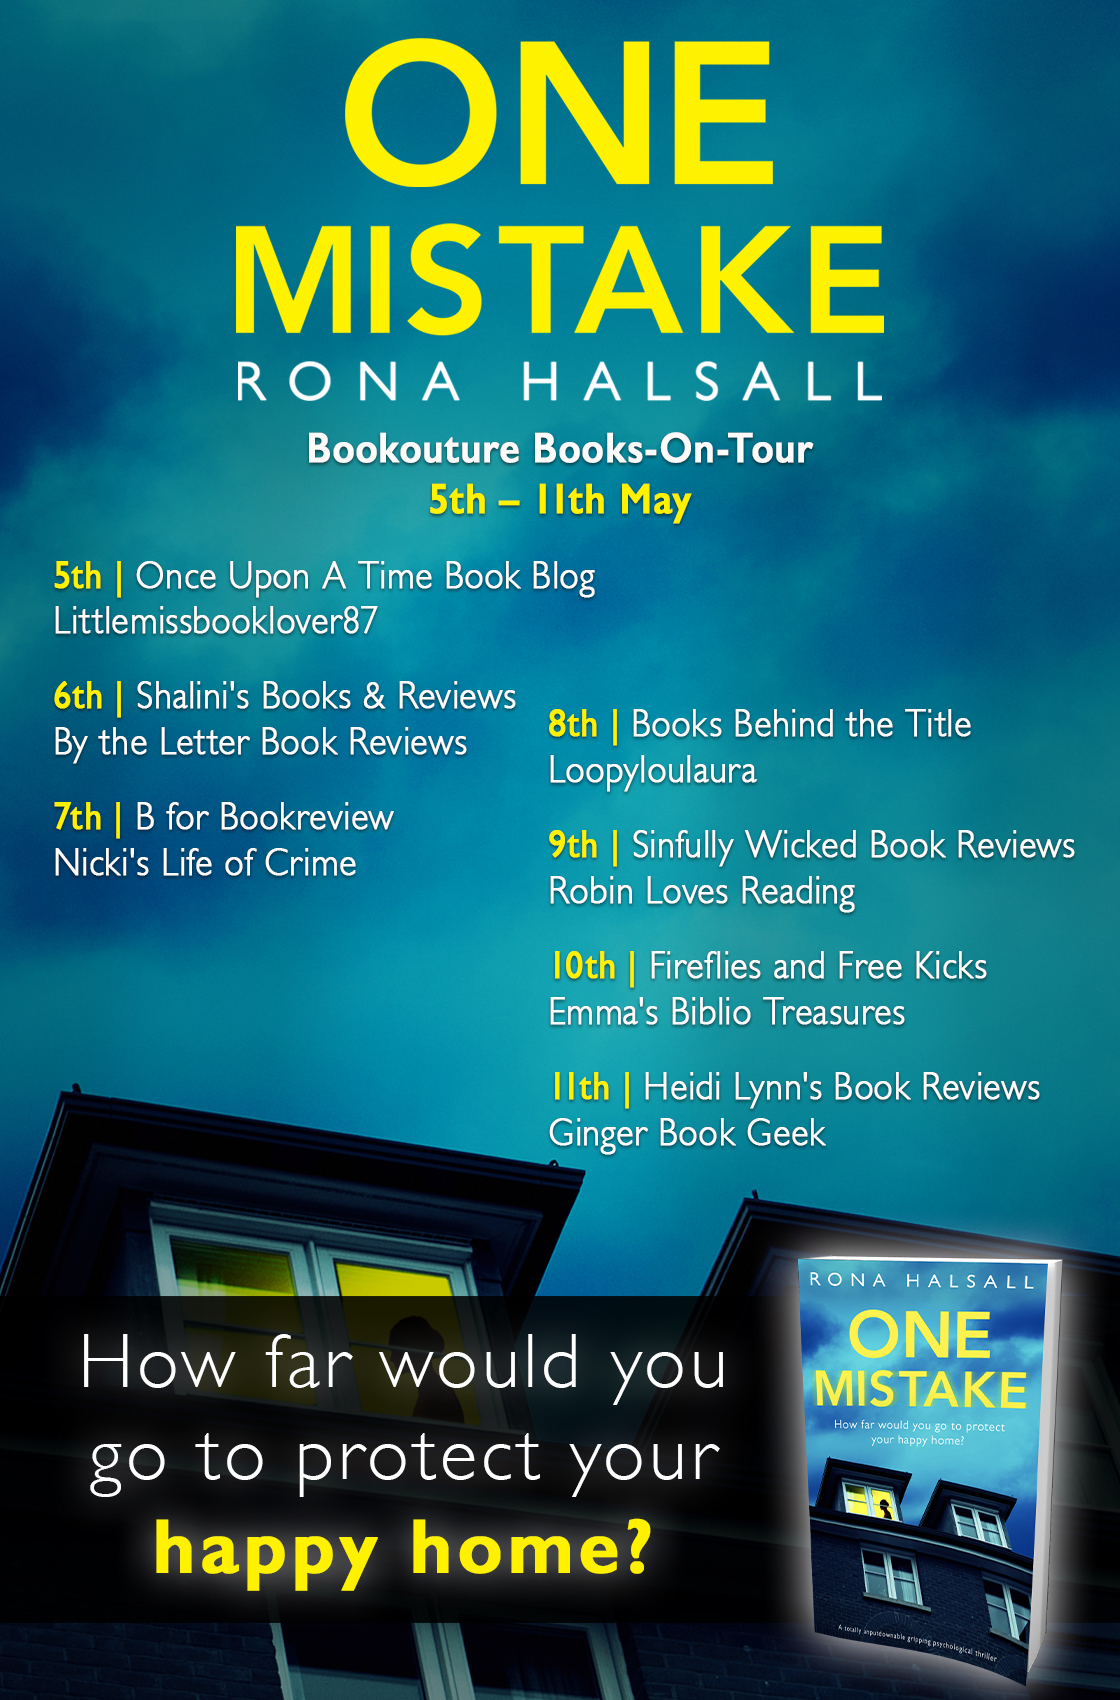 One Mistake - Blog Tour Poster